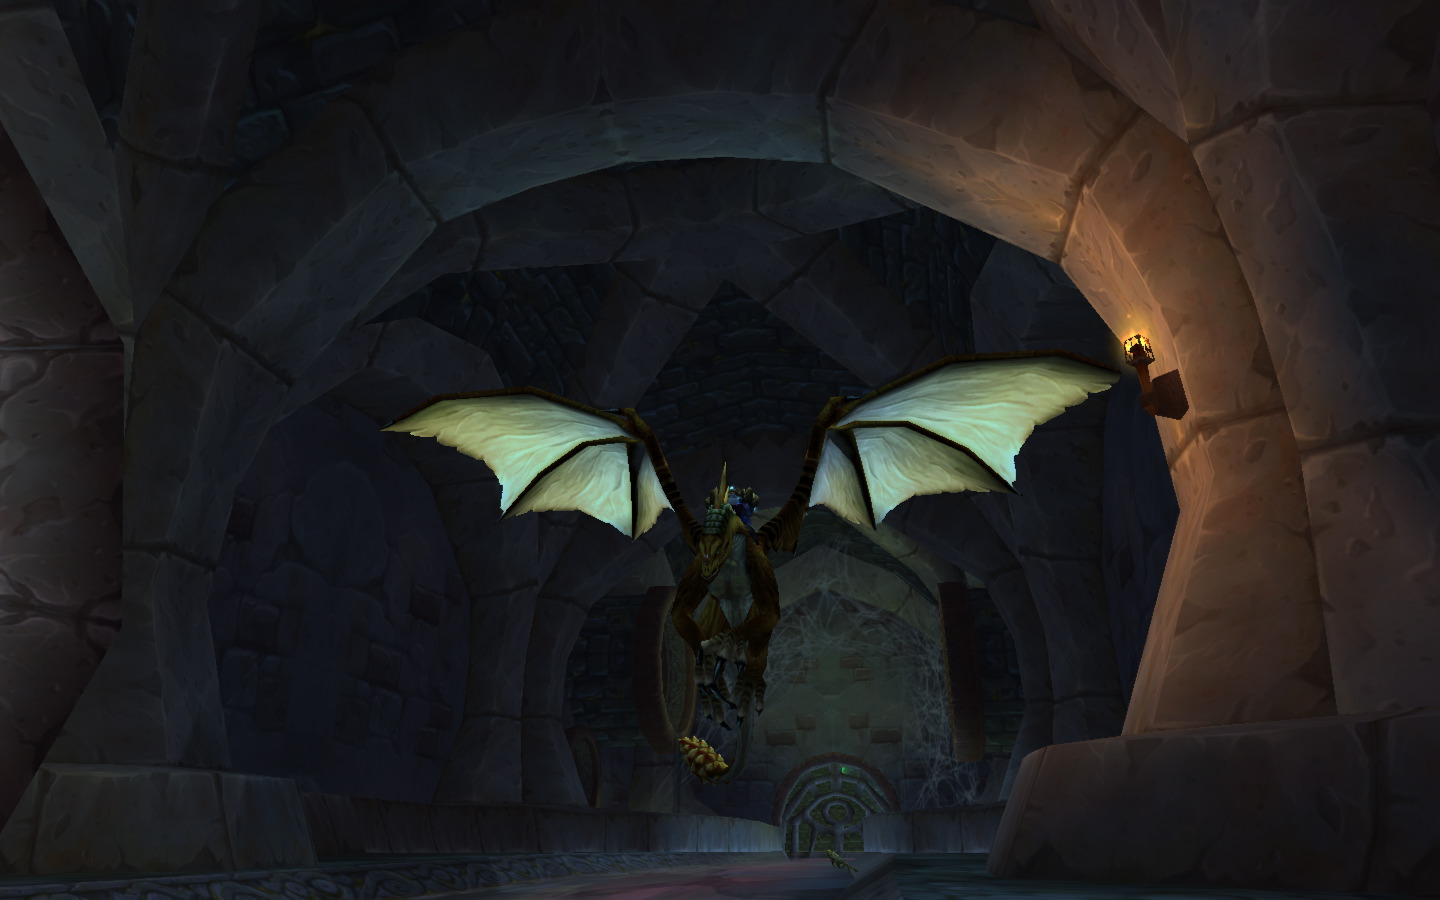 Dragons feel most at home underground donchaknow